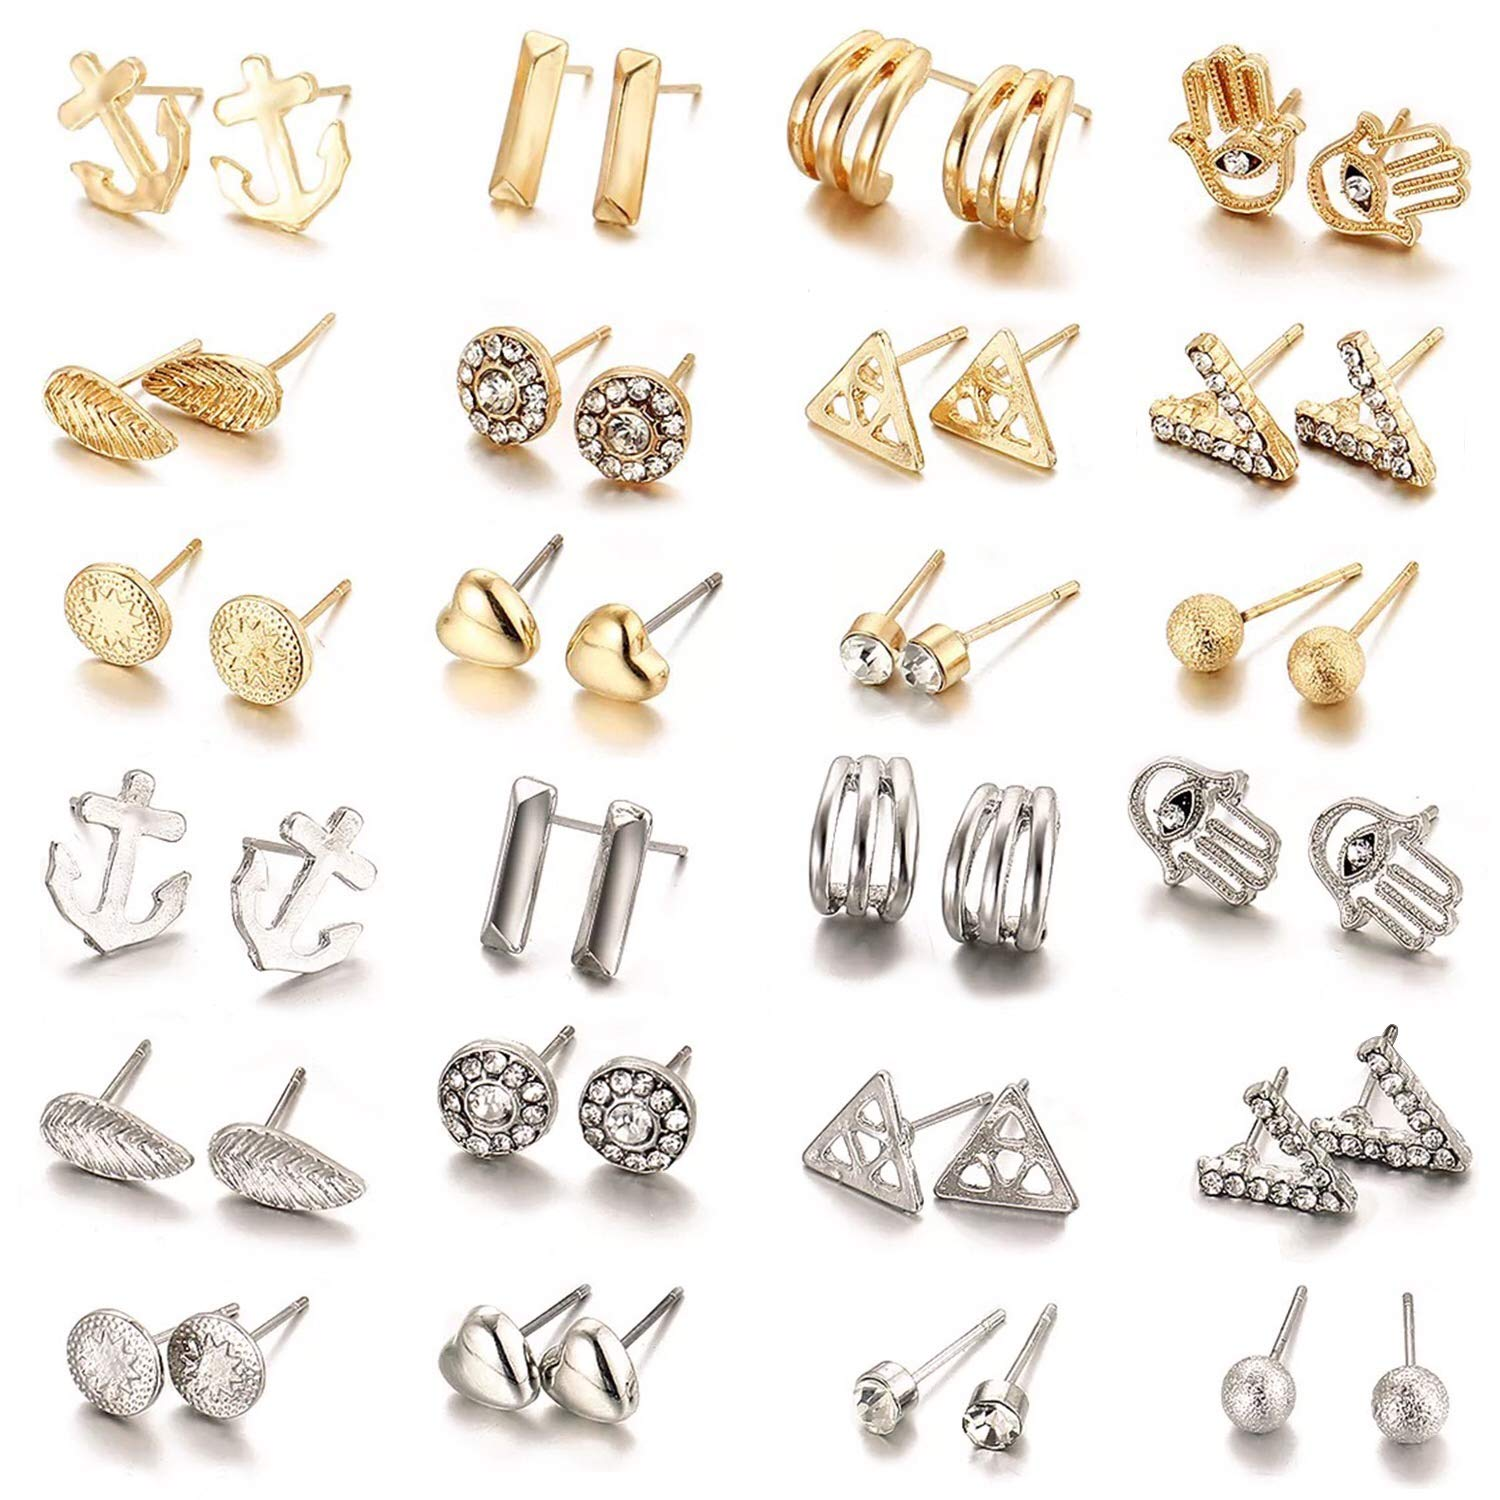 24 Pair/Set Hypoallergenic nickel-free Geometric Crystal Earrings Piercing Assorted Bead Charms Multiple Stud Earring Set (Style 3)